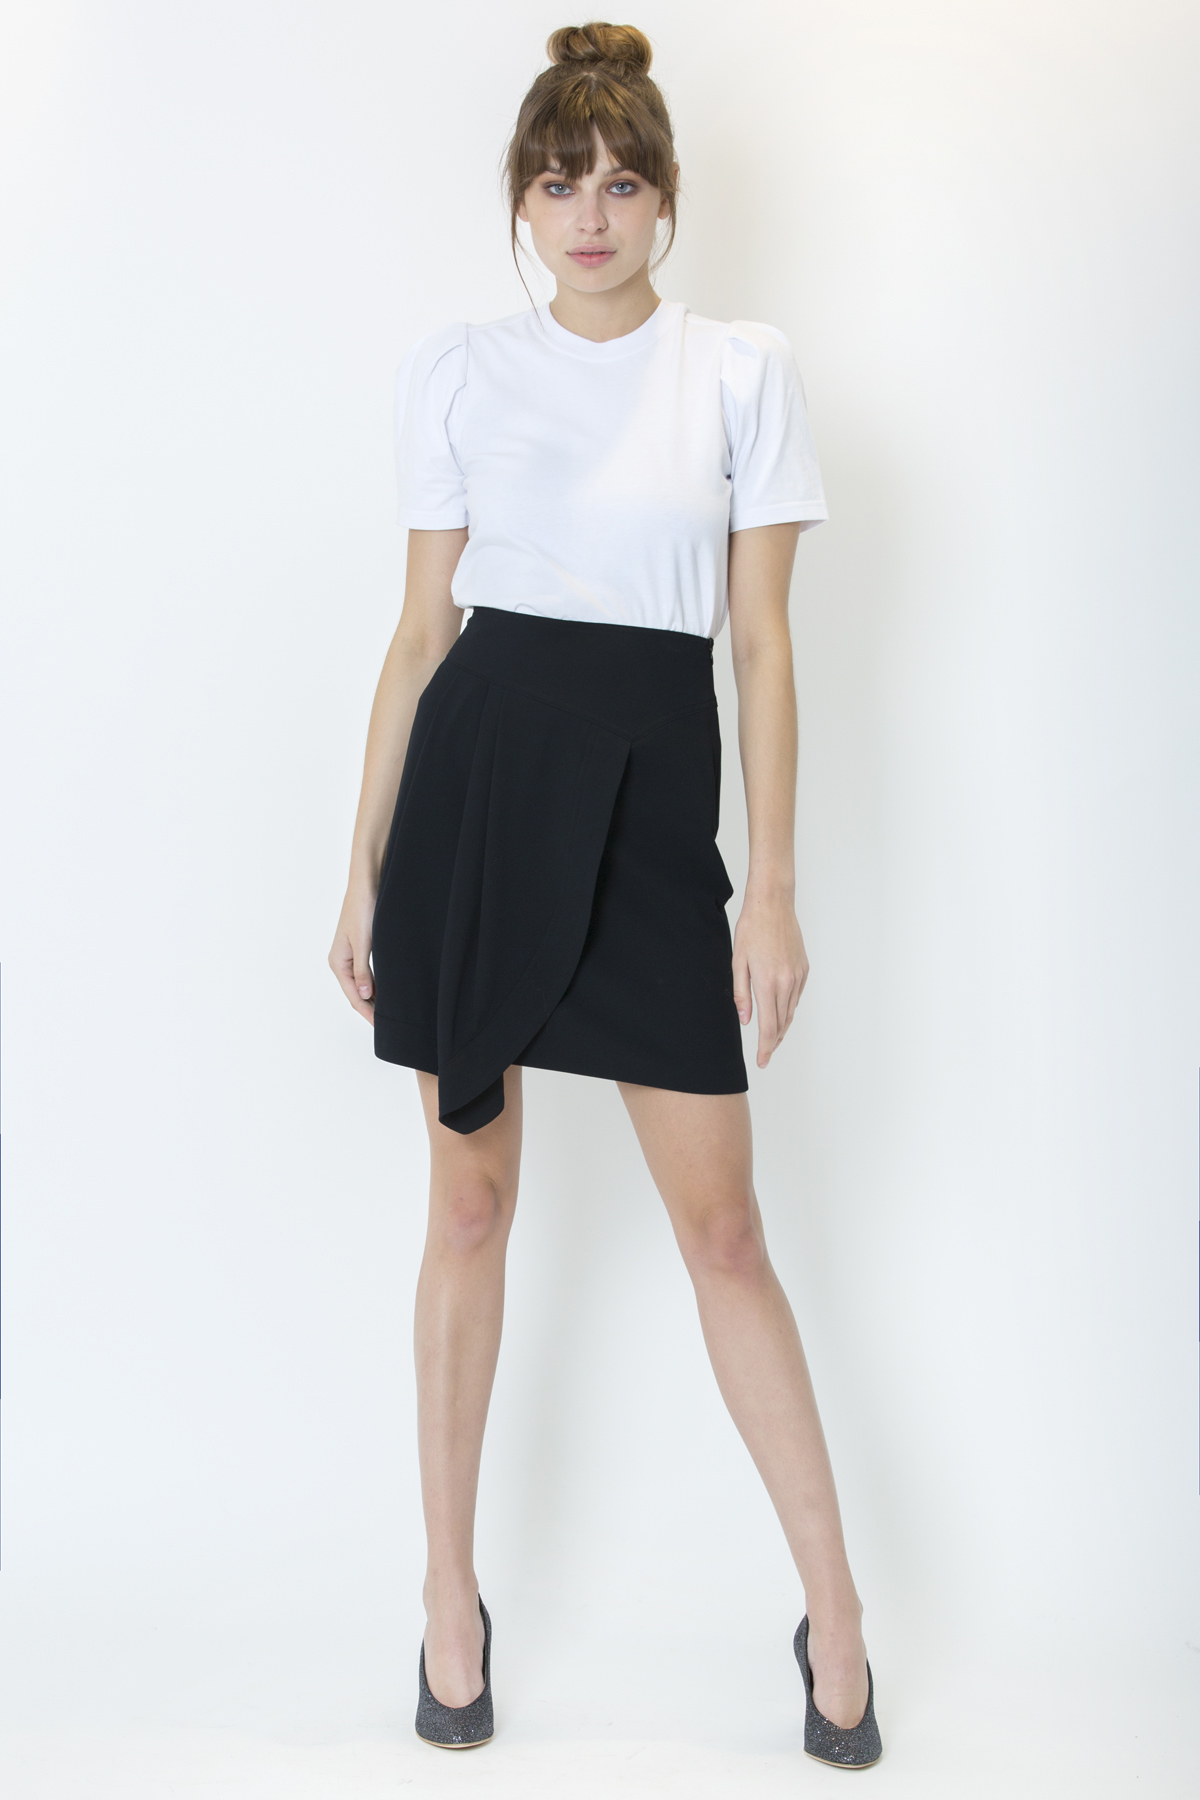 jerlita-skirt-black-assymetric-iro-matchboxathens